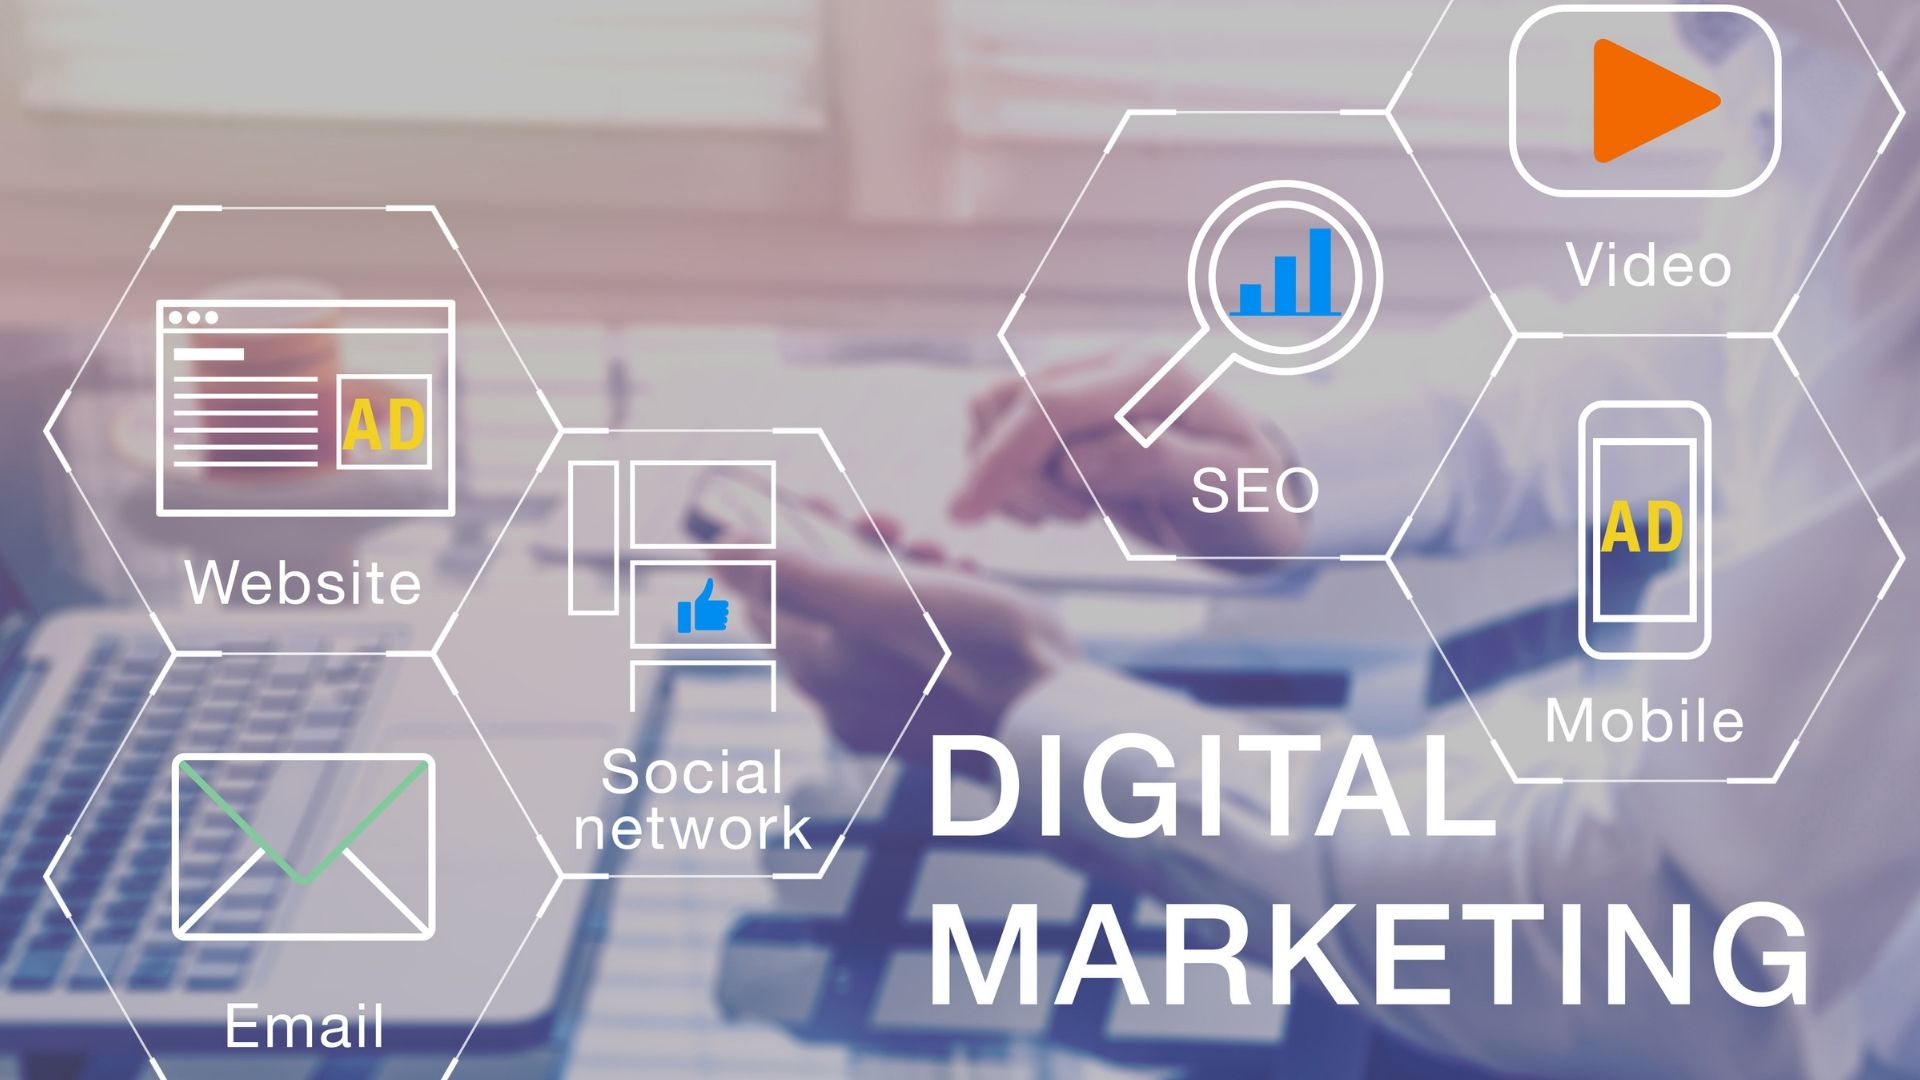 Como conseguir mais clientes com marketing digital: 11 dicas essenciais